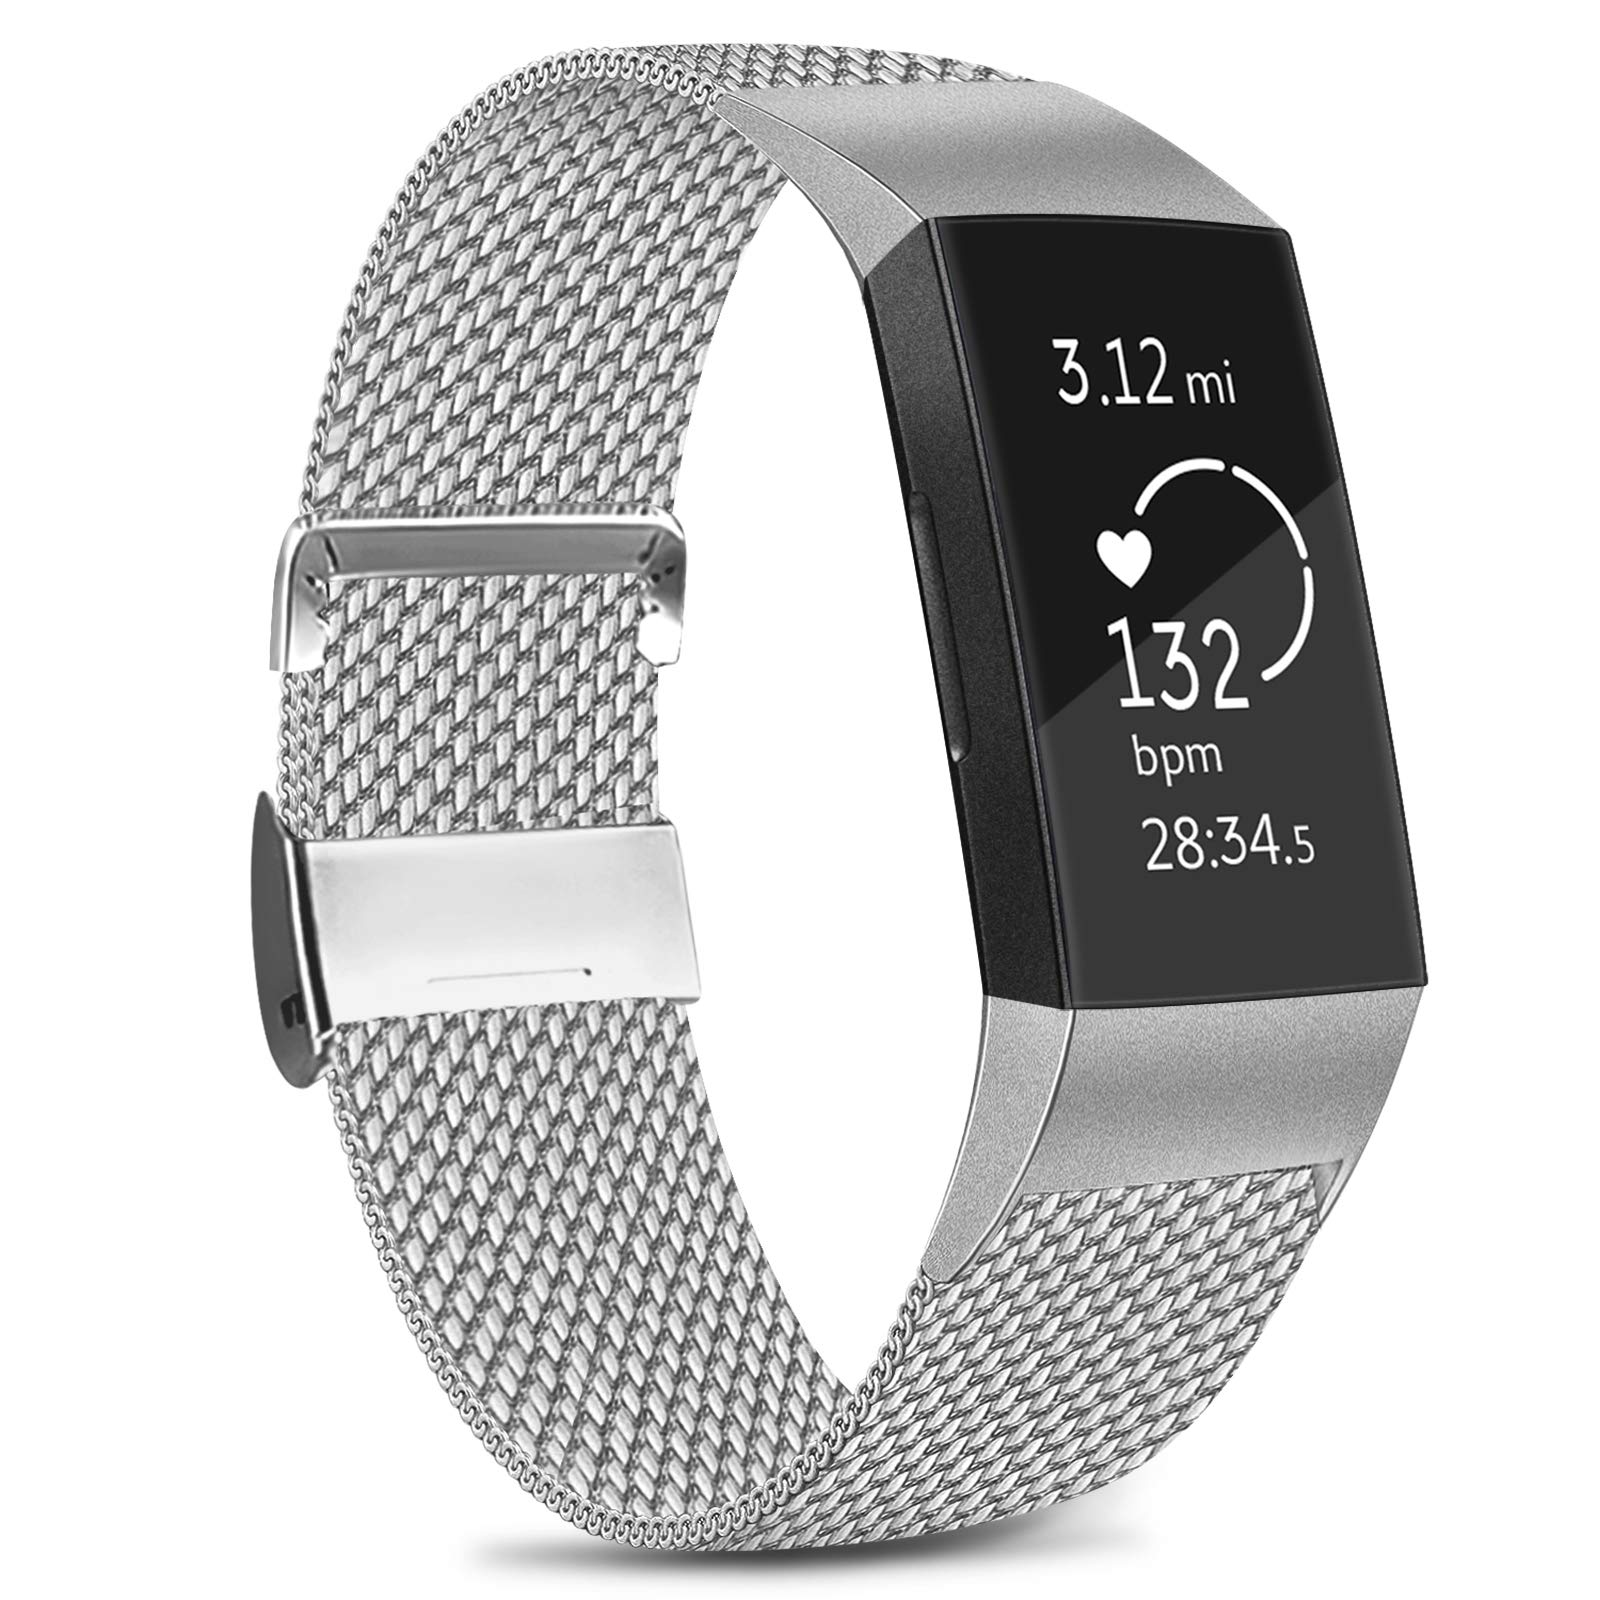 Amzpas Compatible with Fitbit Charge 3 Strap/Fitbit Charge 4 Strap, Adjustable Mesh Loop Stainless Steel Metal Strap Wristband with Unique Magnet Lock for Fitbit Charge 3/Charge 4